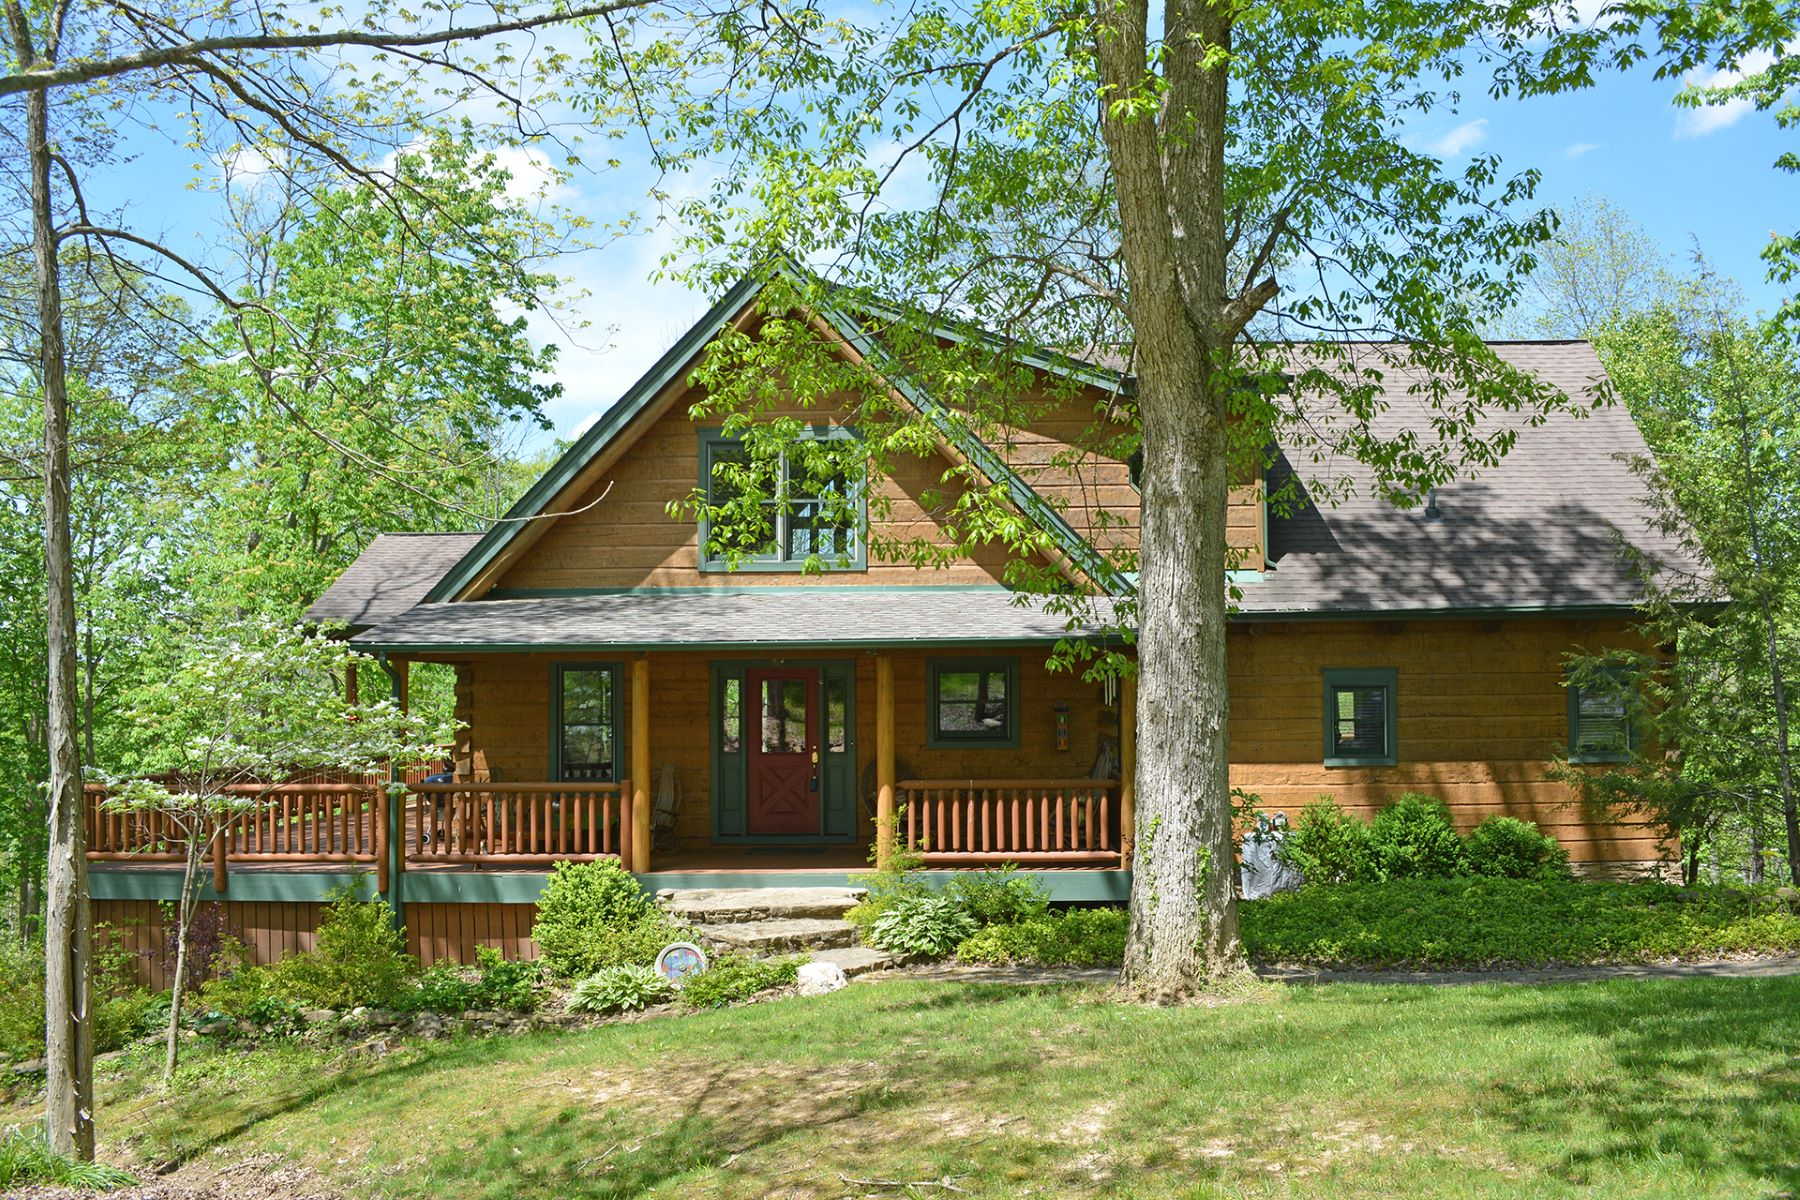 Single Family Home for Sale at Energy Efficient Log Home With Amazing Seasonal Views of the Ohio River 1438 South Altman Drive New Richmond, Ohio 45157 United States